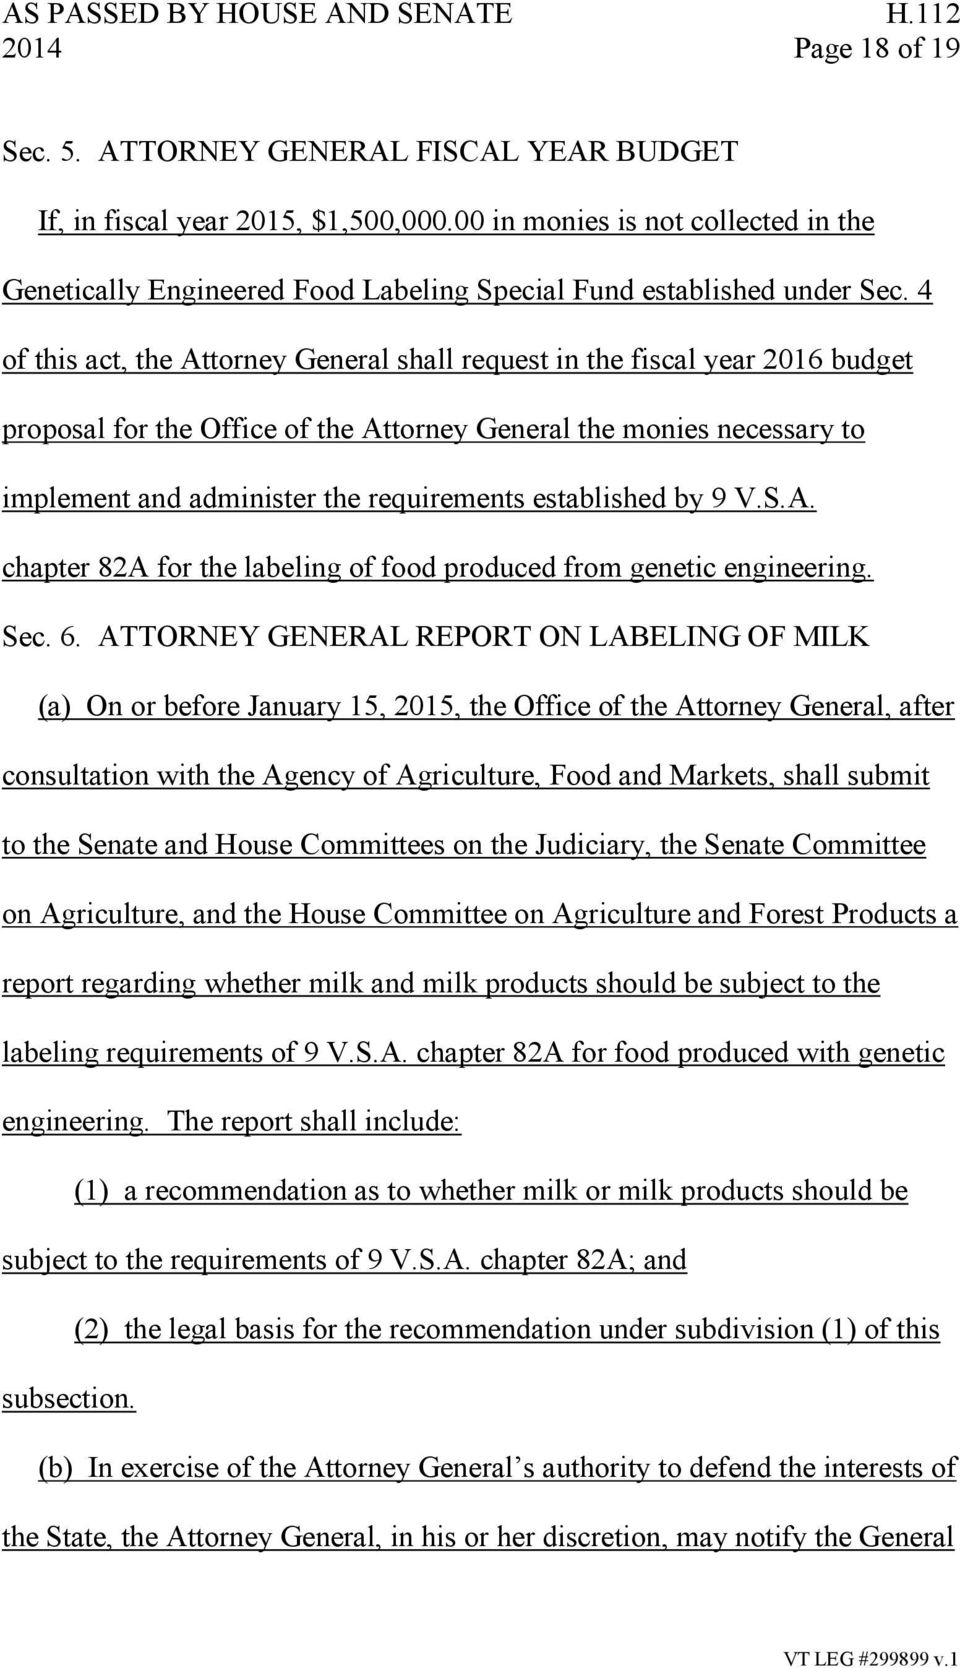 4 of this act, the Attorney General shall request in the fiscal year 2016 budget proposal for the Office of the Attorney General the monies necessary to implement and administer the requirements